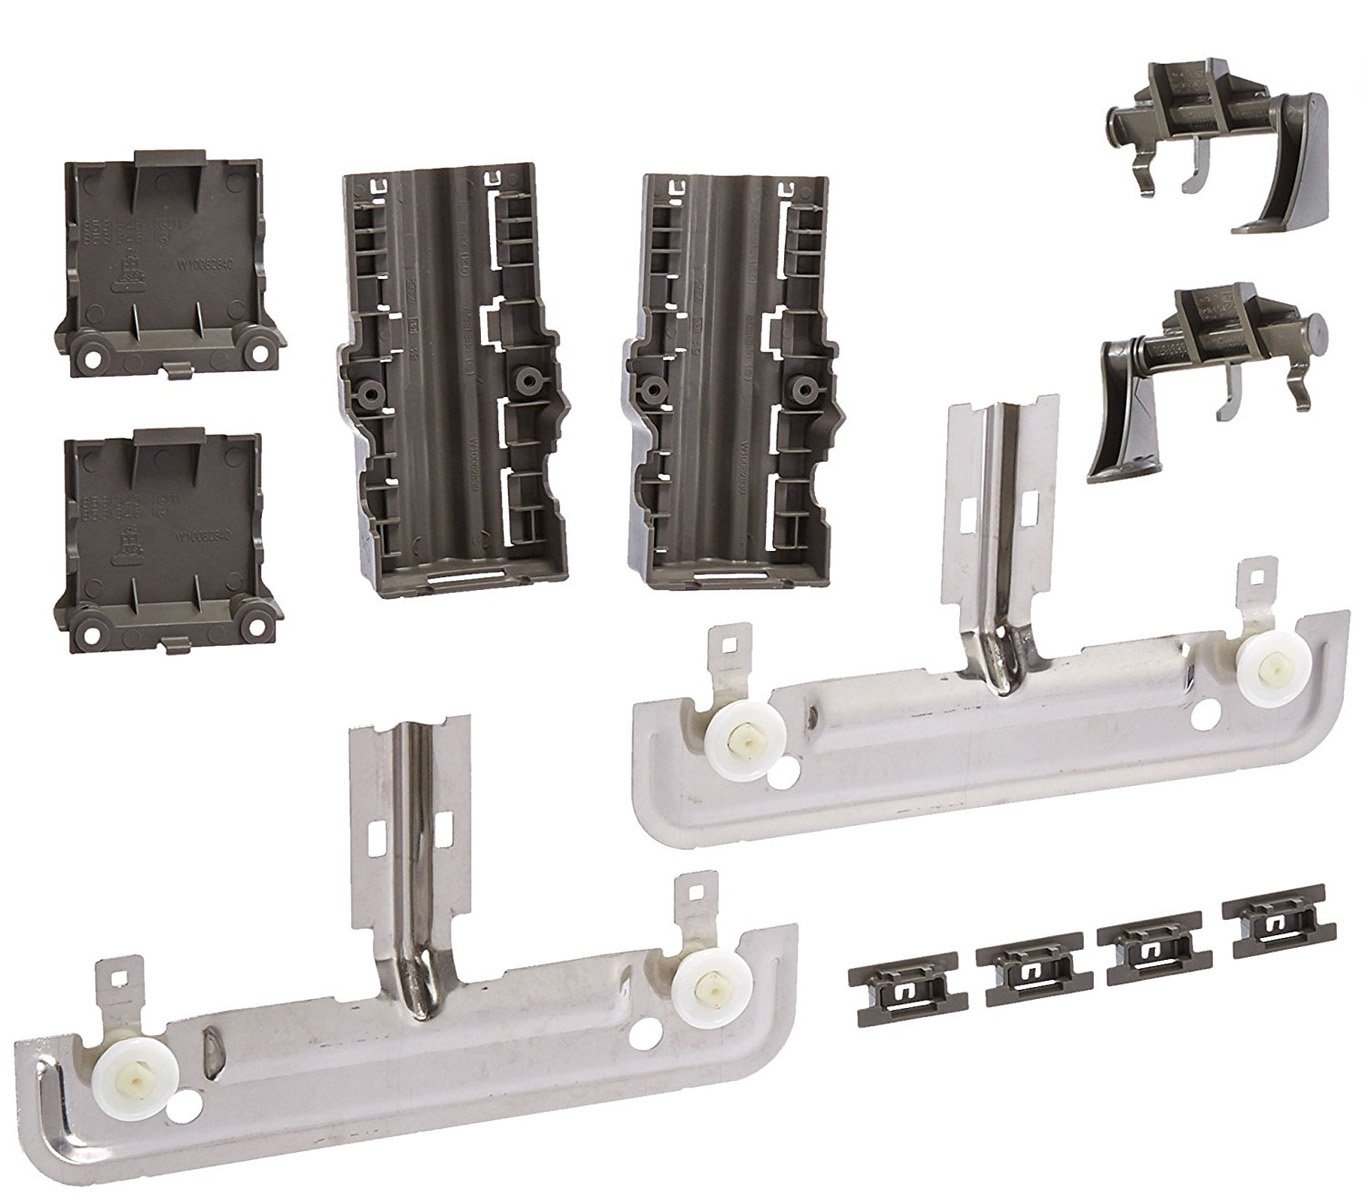 Siwdoy W10712395 Rack Adjuster Kit Compatible with Whirlpool Dishwasher Adjuster PS10065979 AP5957560 W10350375 W10250159